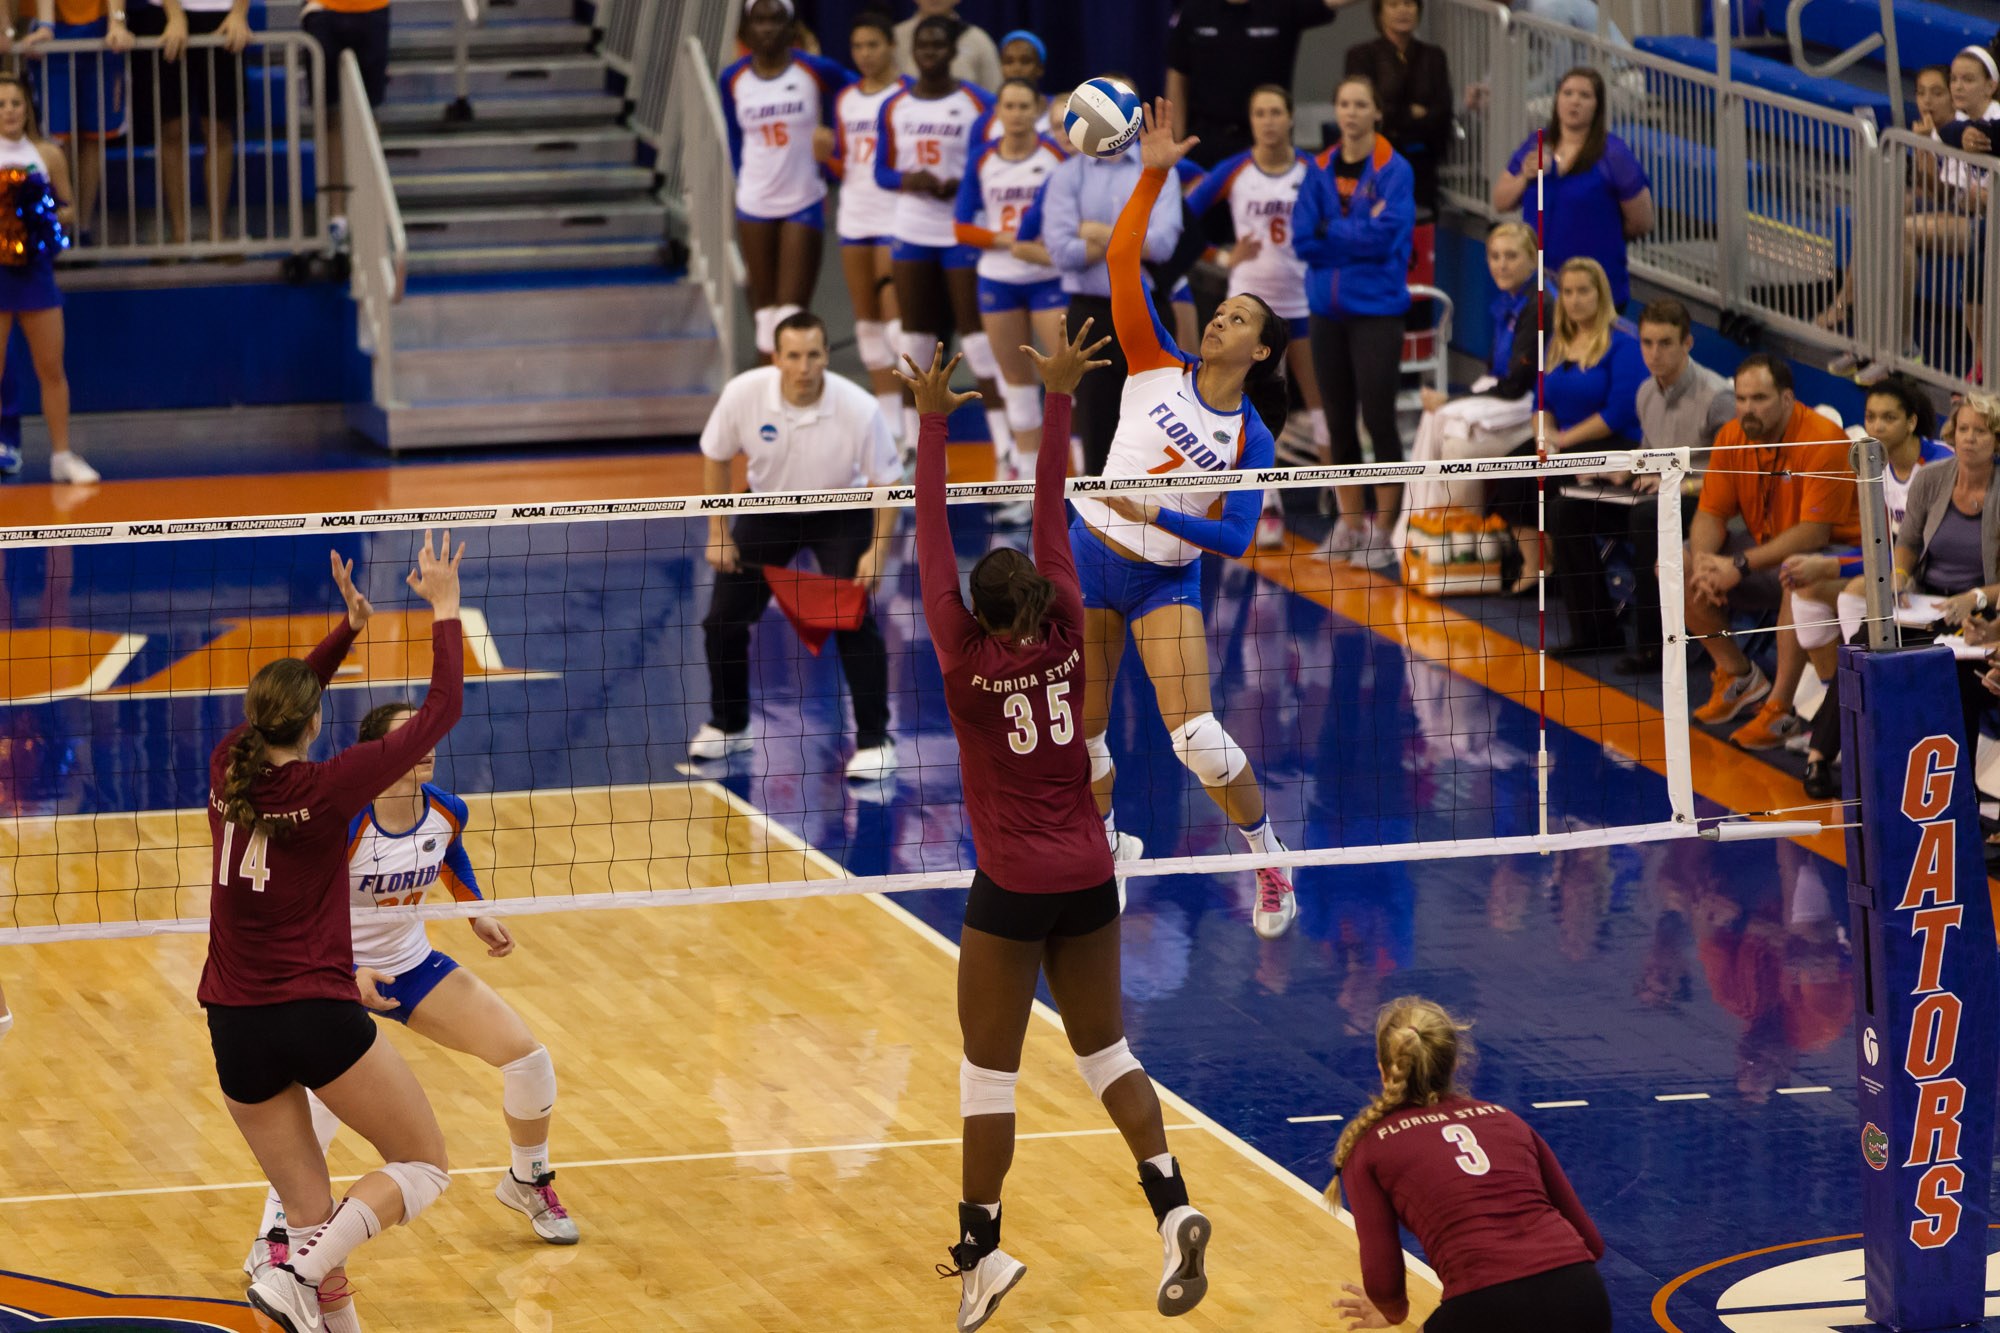 Gabby Mallette skies over the net for the Florida Gators. Photograph by Matt Pendleton.